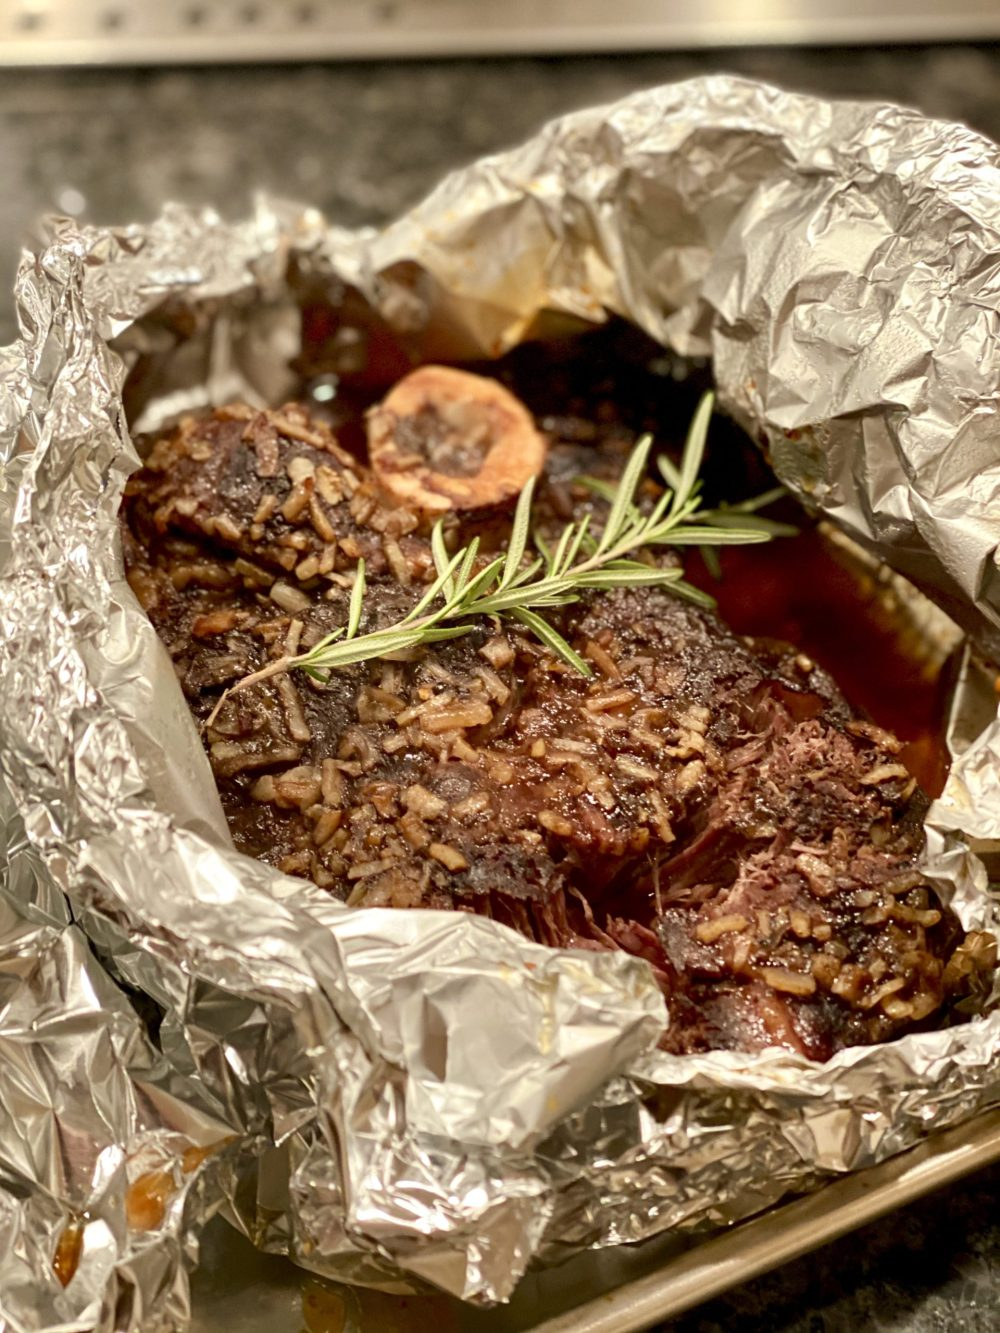 Looking for easy comfort food on a cold winter's day? This hands-off meal will warm your kitchen and your soul while the incredible aroma builds anticipation. The best part? Three simple ingredients are all that's needed for this fork tender meat that's been a favorite over several generations in our family.